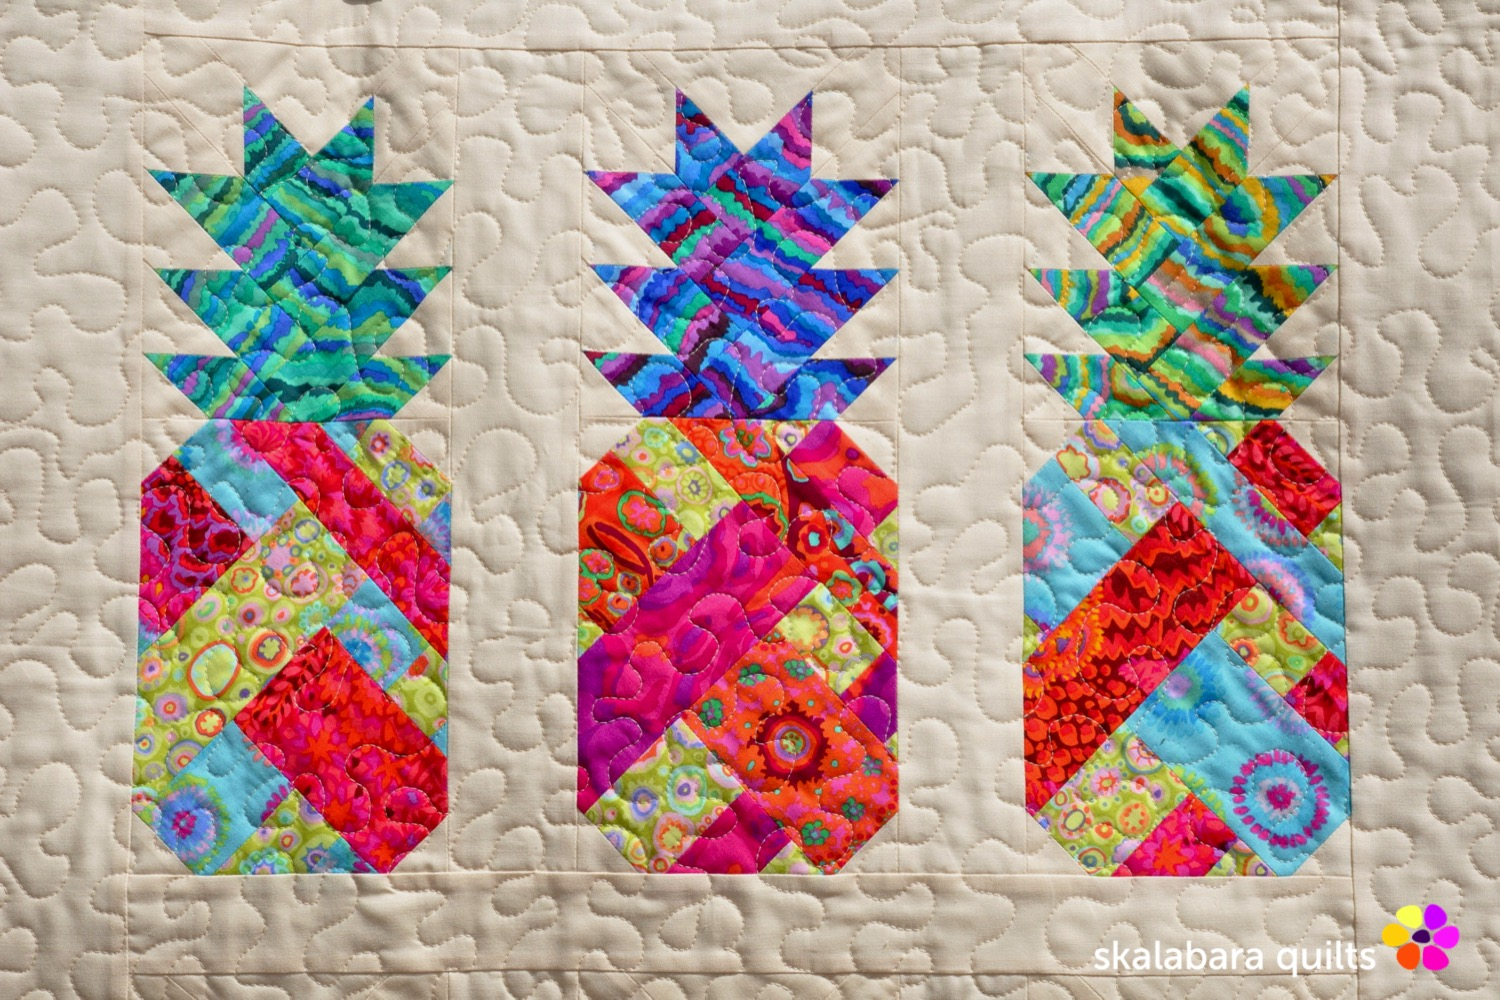 pineapple wall hanging detail 1 - skalabara quilts